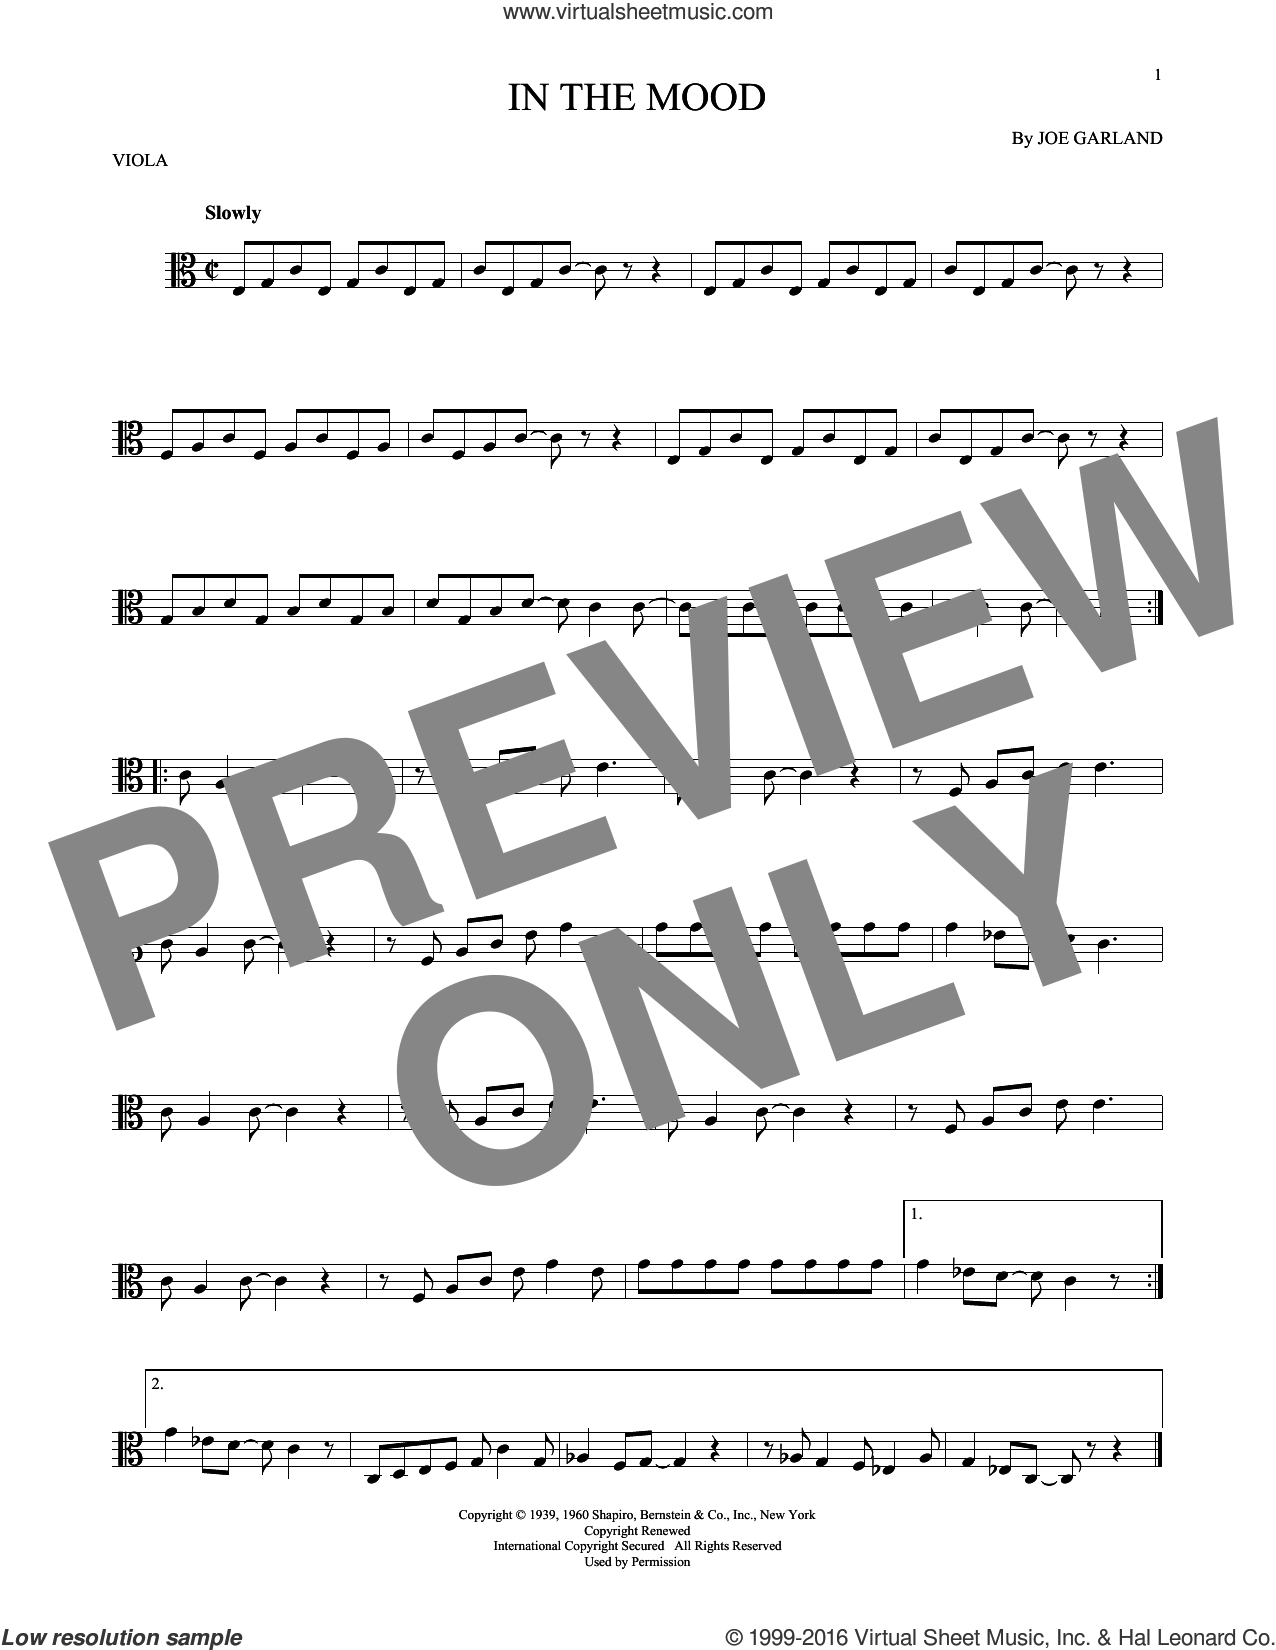 In The Mood sheet music for viola solo by Joe Garland and Glenn Miller & His Orchestra, intermediate skill level